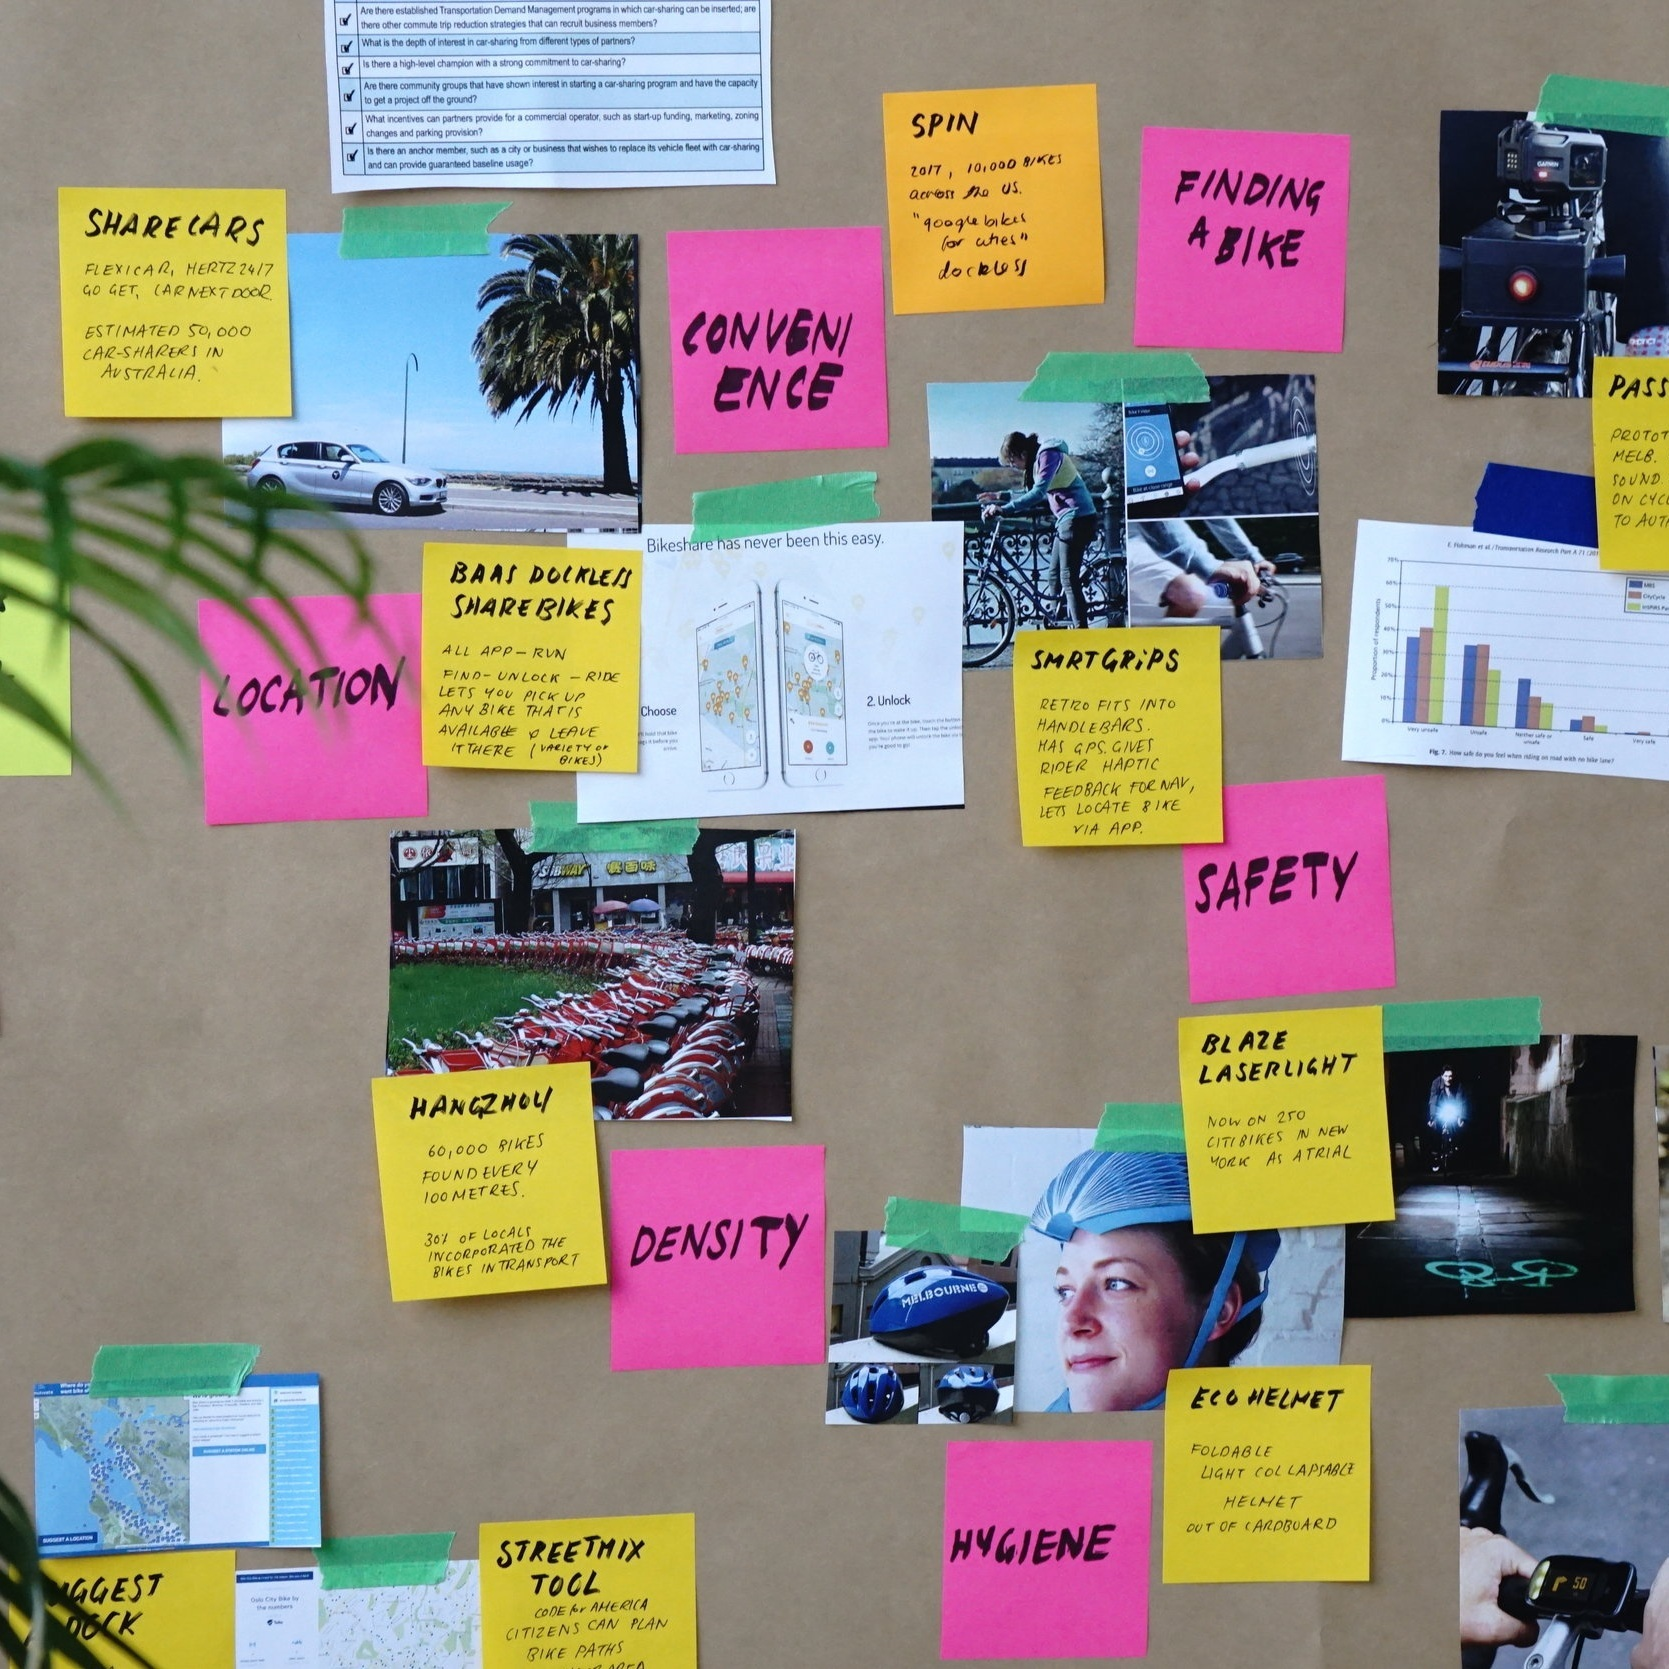 Junior Business Development & Marketing - Aspirant Analytics is building the next generation People Analytics - connecting unconventional data sets to find insights that inspires change. We are looking for Business Developers to help get the word out. You will work in a collaborative environment and own your work to help us build a successful business.Full time position. Based in London.Learn more about this role ⟹